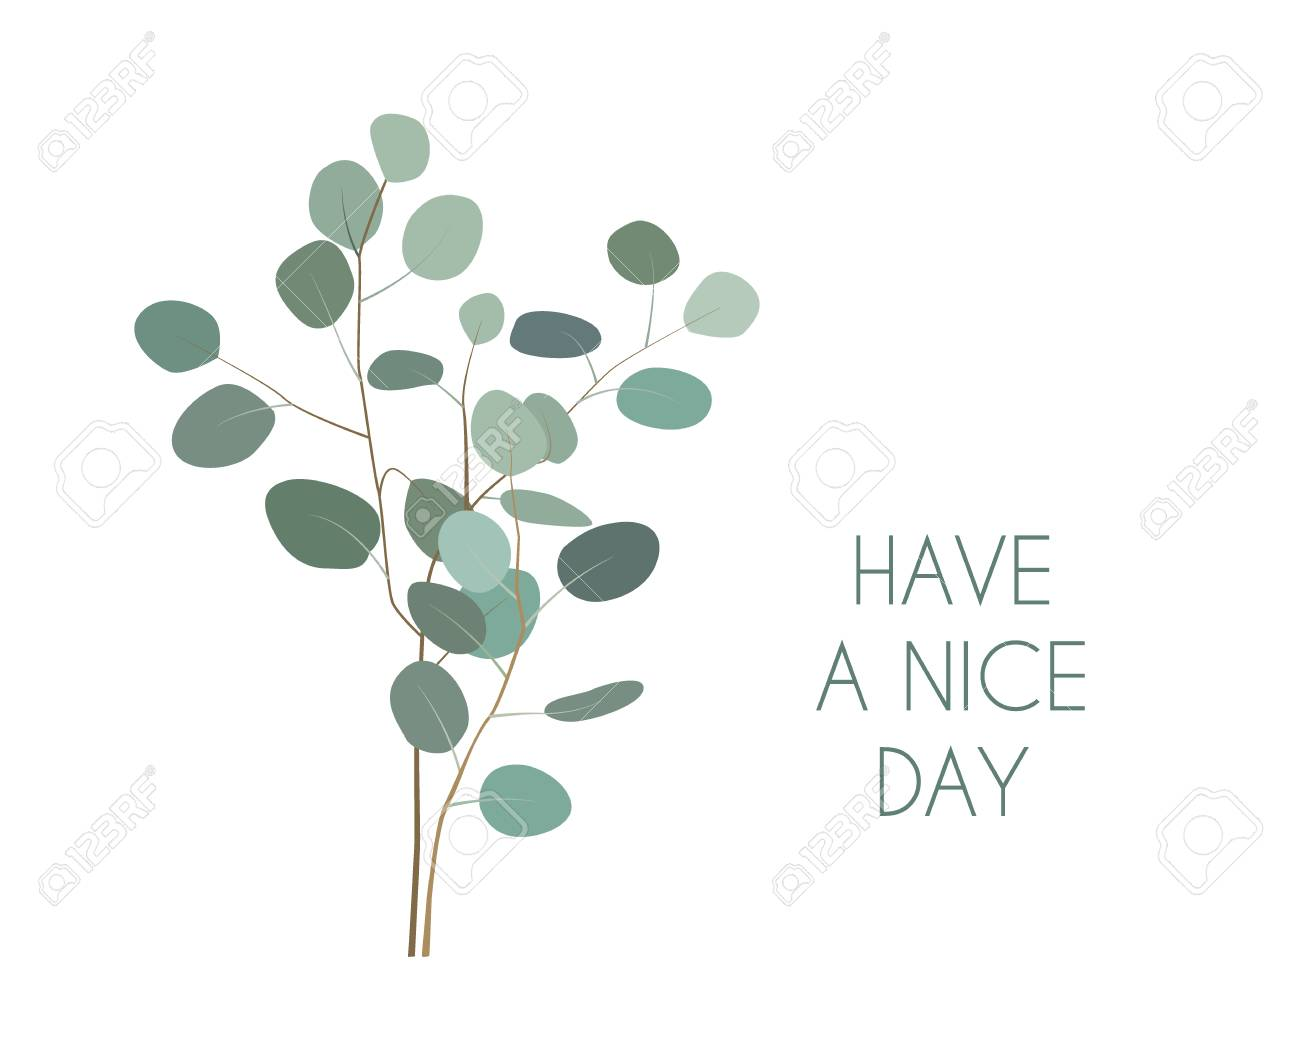 Have a nice Day greeting card with silver dollar Eucalyptus plant branches. Hand painted eucalyptus elements isolated on white background - 96719273